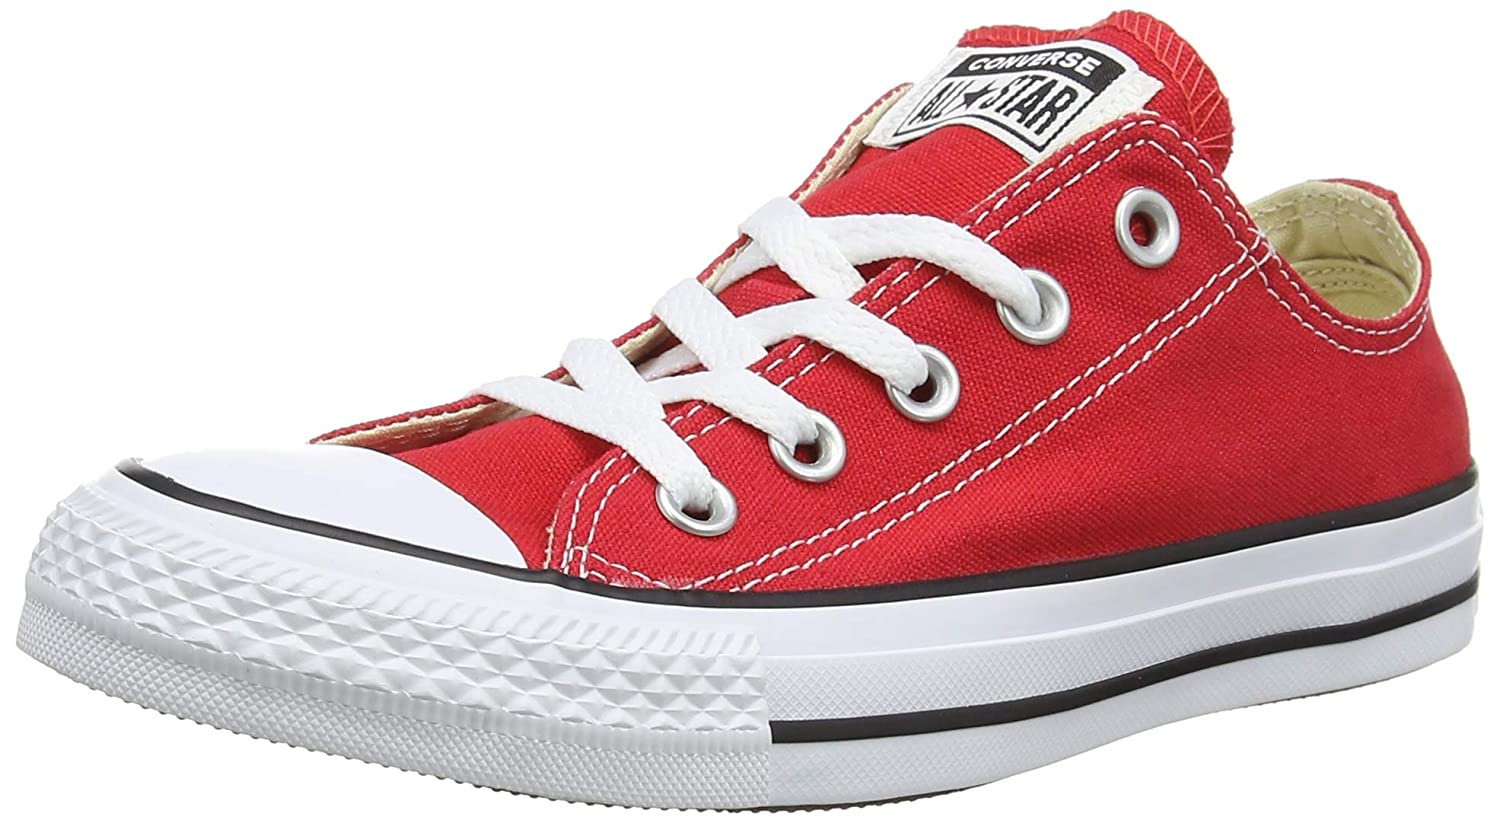 best website e0ed0 c9d93 Amazon.com   Converse Chuck Taylor All Star Core Ox   Fashion Sneakers